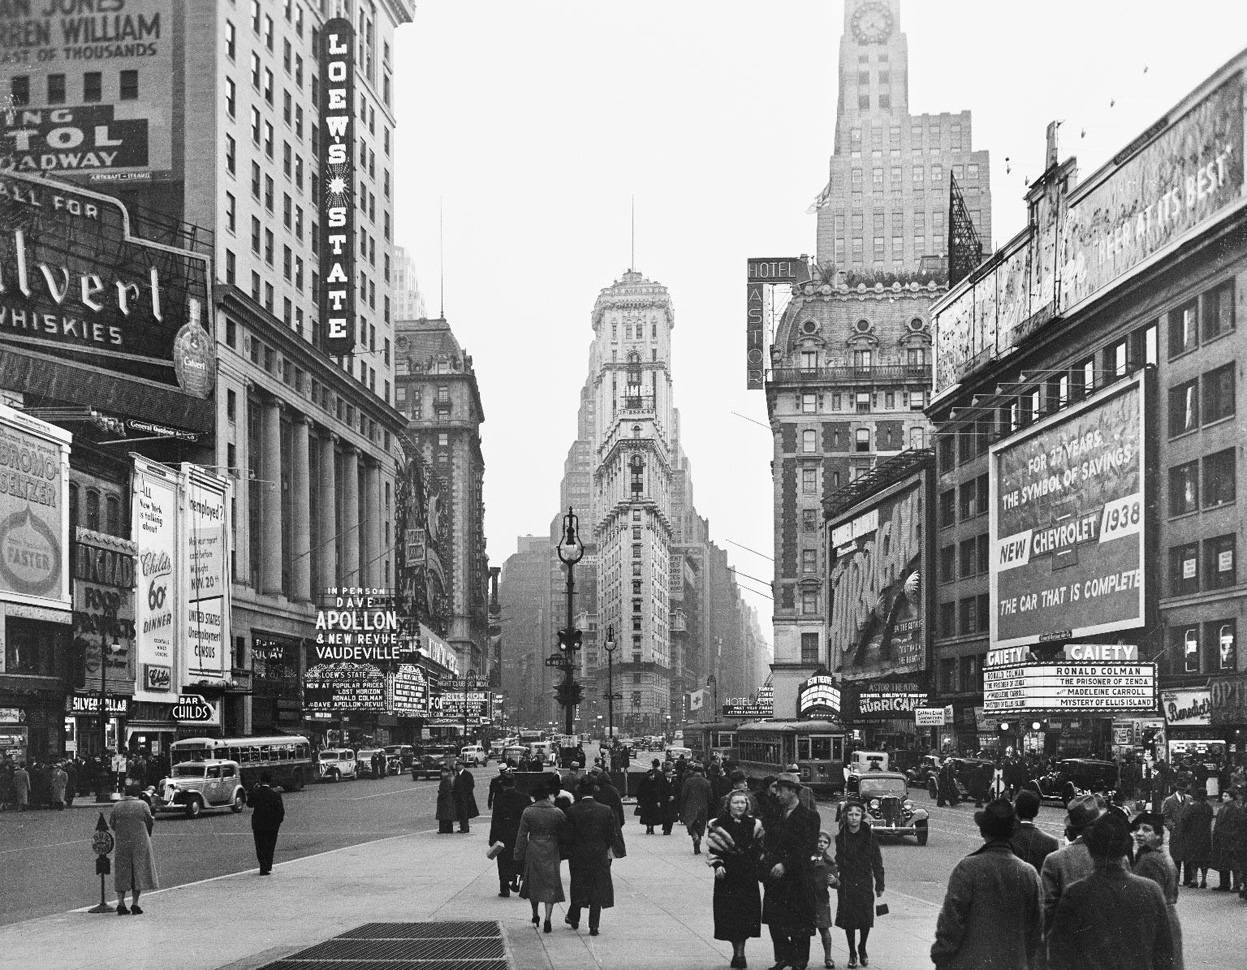 Open Gallery : postez les plus belles images que vous croisez... - Page 17 Times-Square-New-York-City-January-1938-Bofinger-E.M.